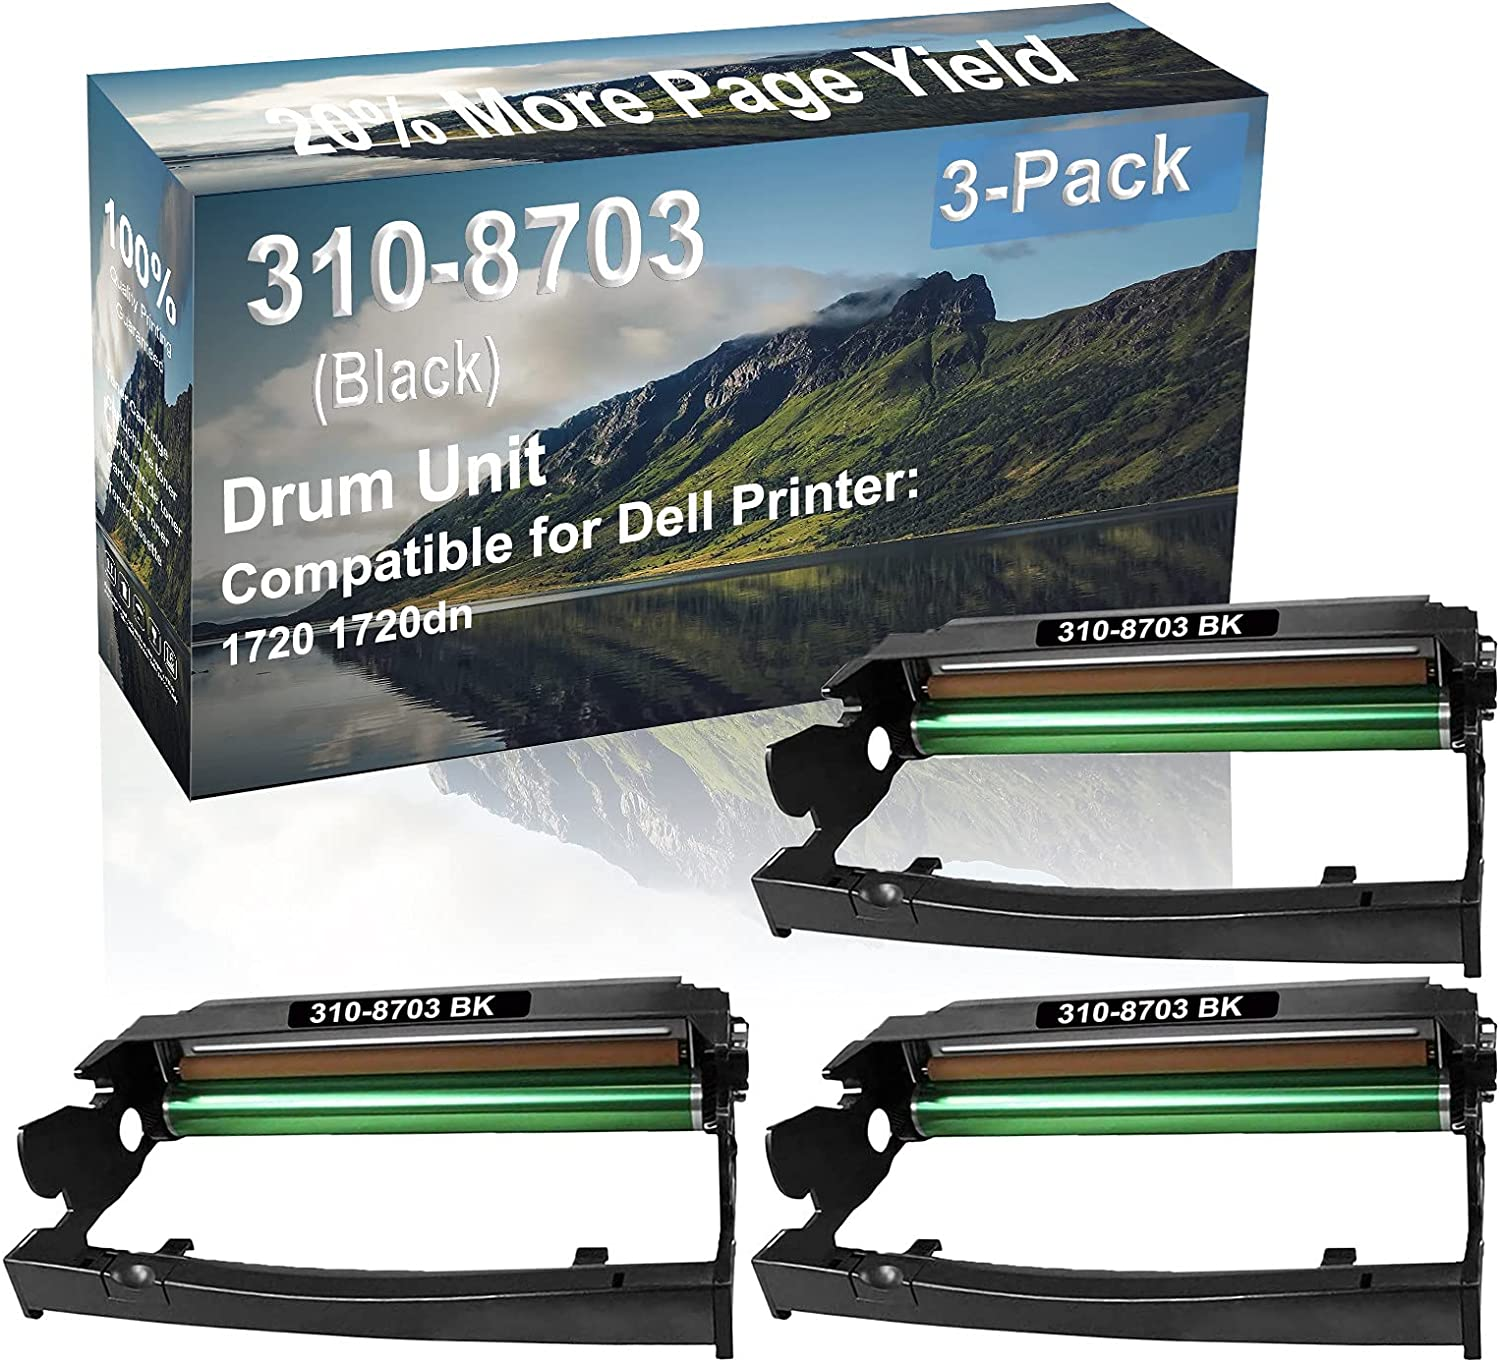 3-Pack Compatible Drum Unit (Black) Replacement for Dell 310-8703 Drum Kit use for Dell 1720 1720dn Printer